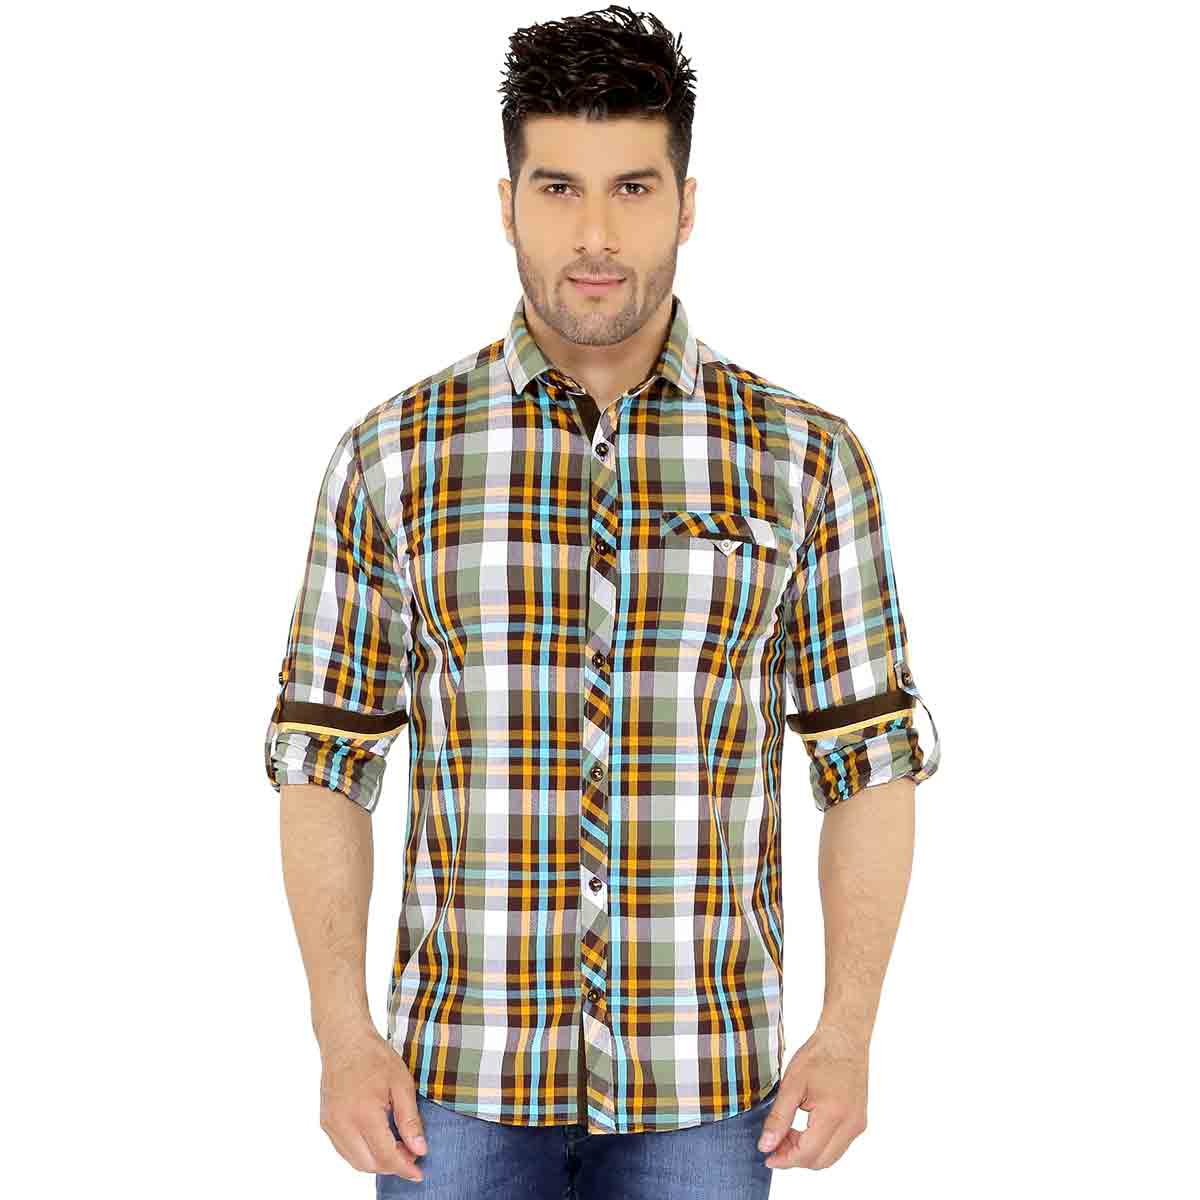 Green & Brown Checks Casual Shirt